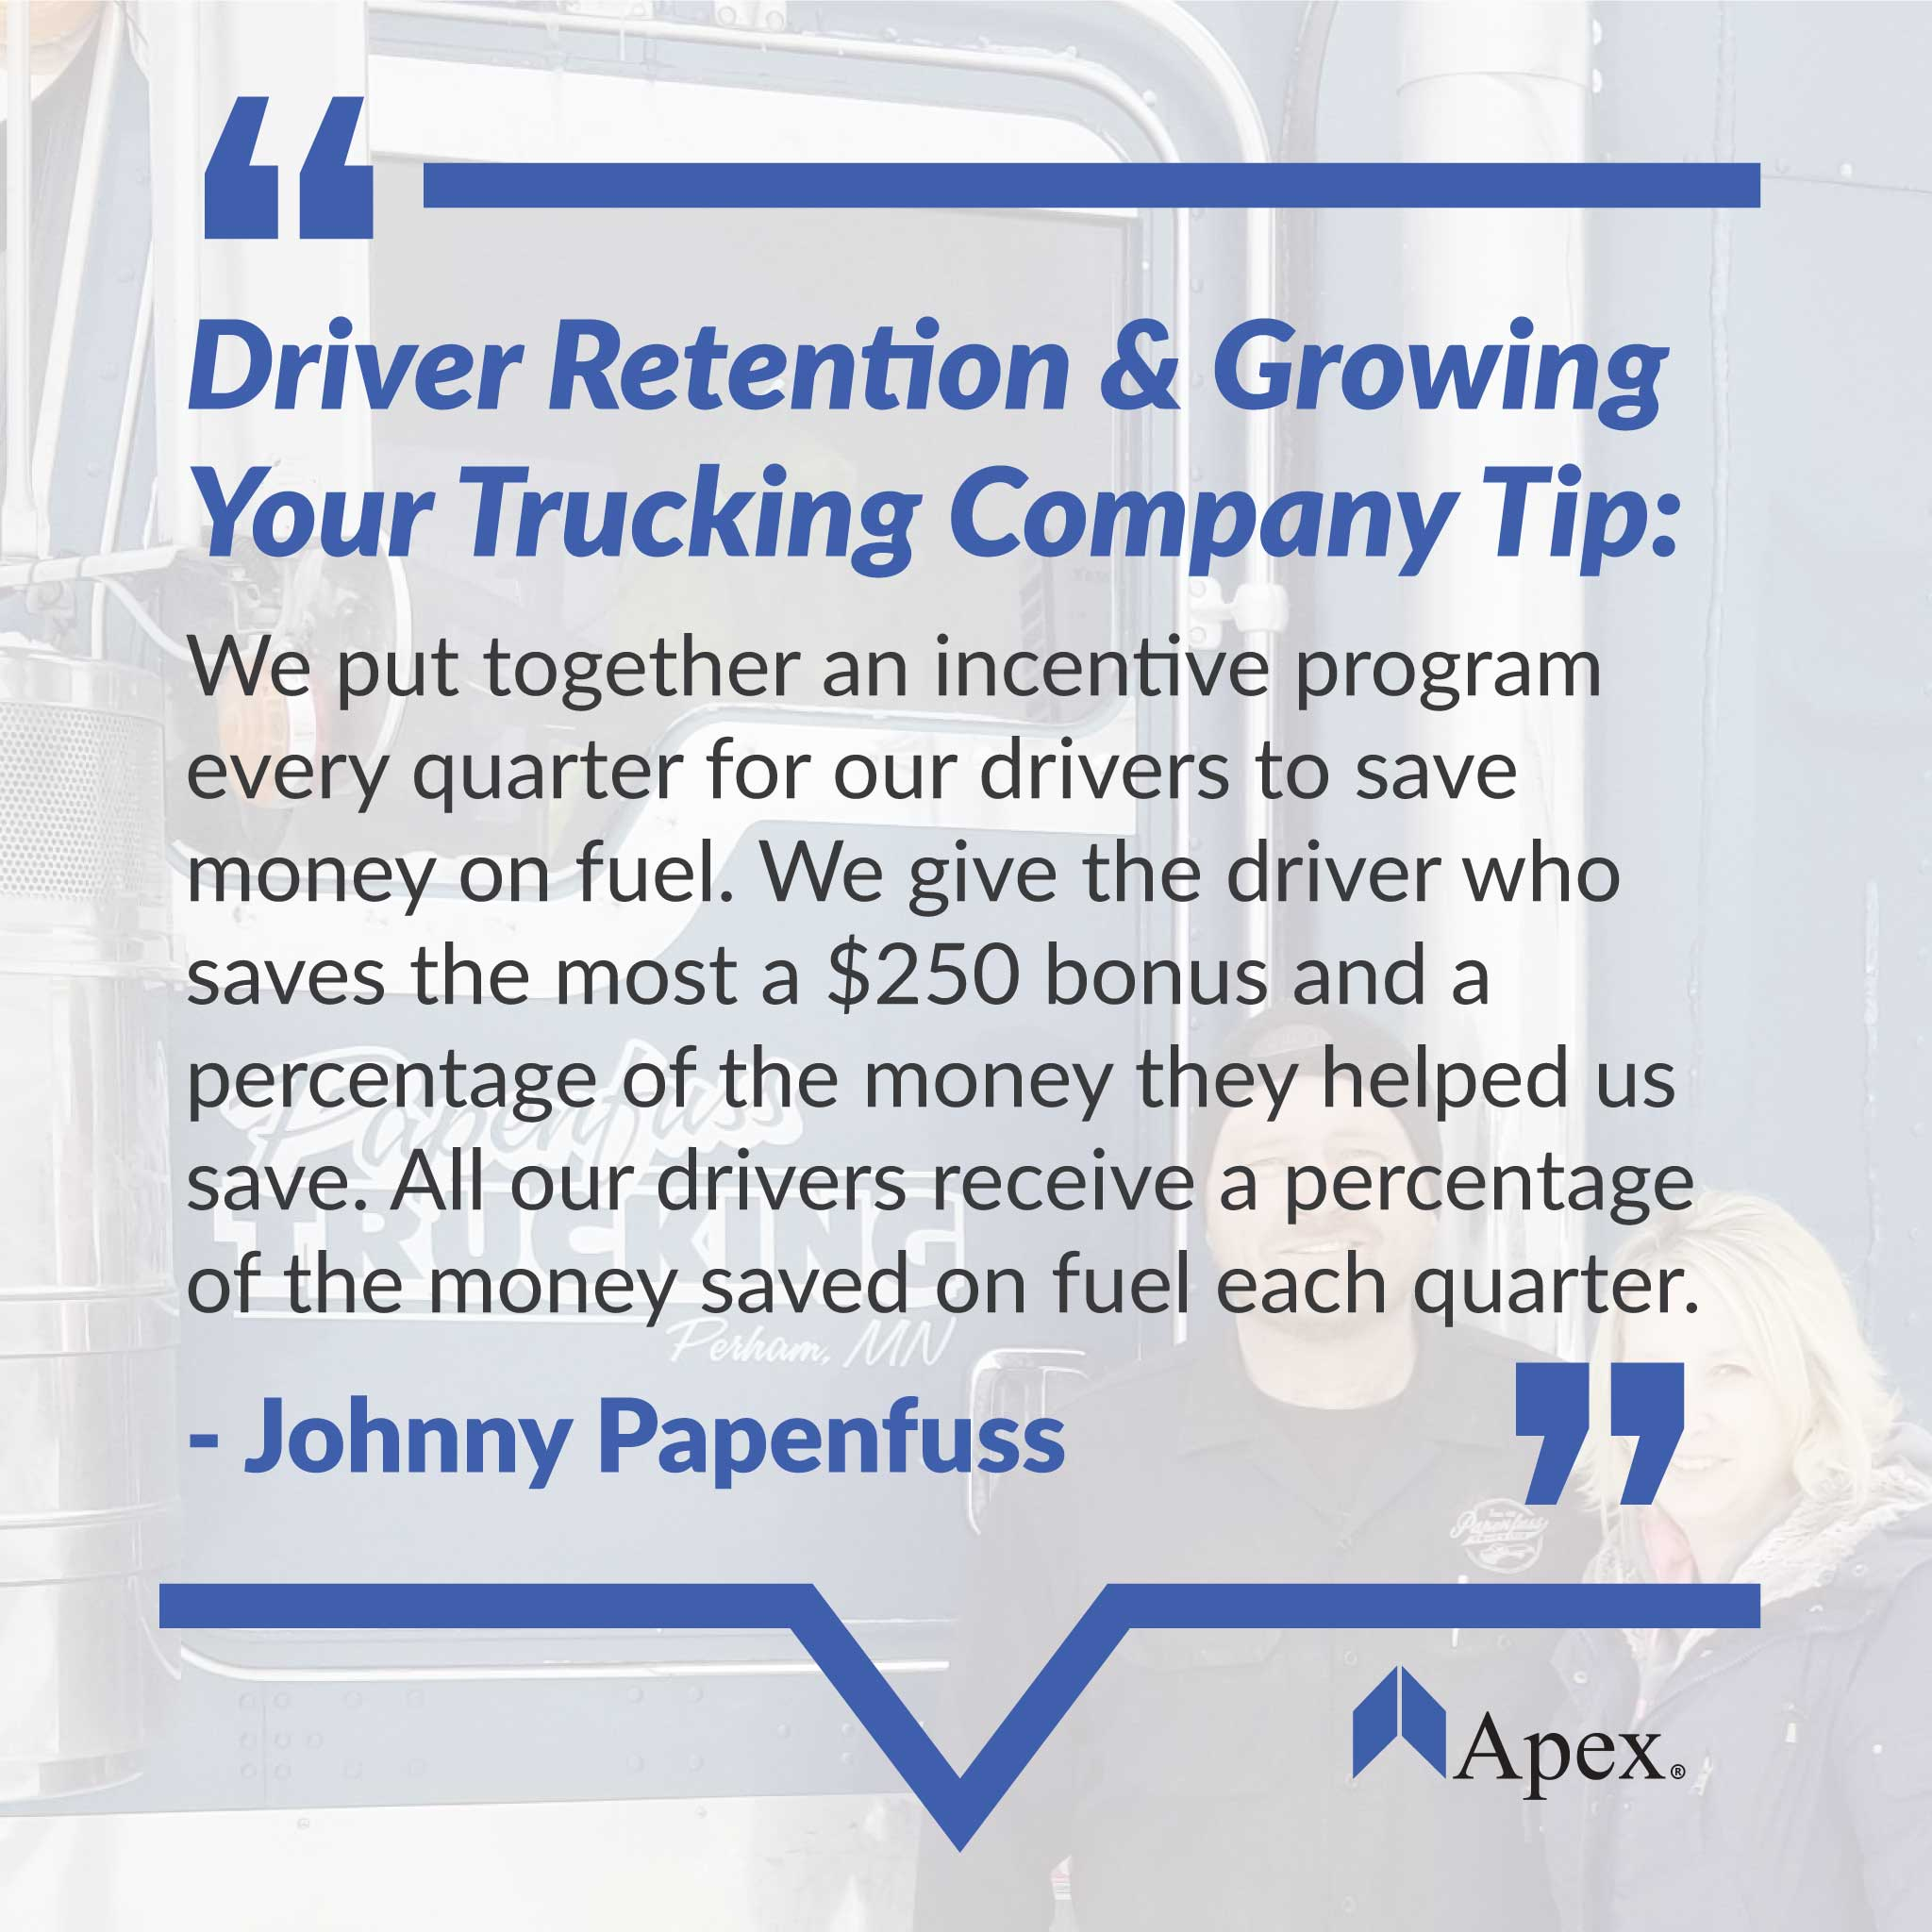 Pappenfuss Trucking | tip to grow your trucking company